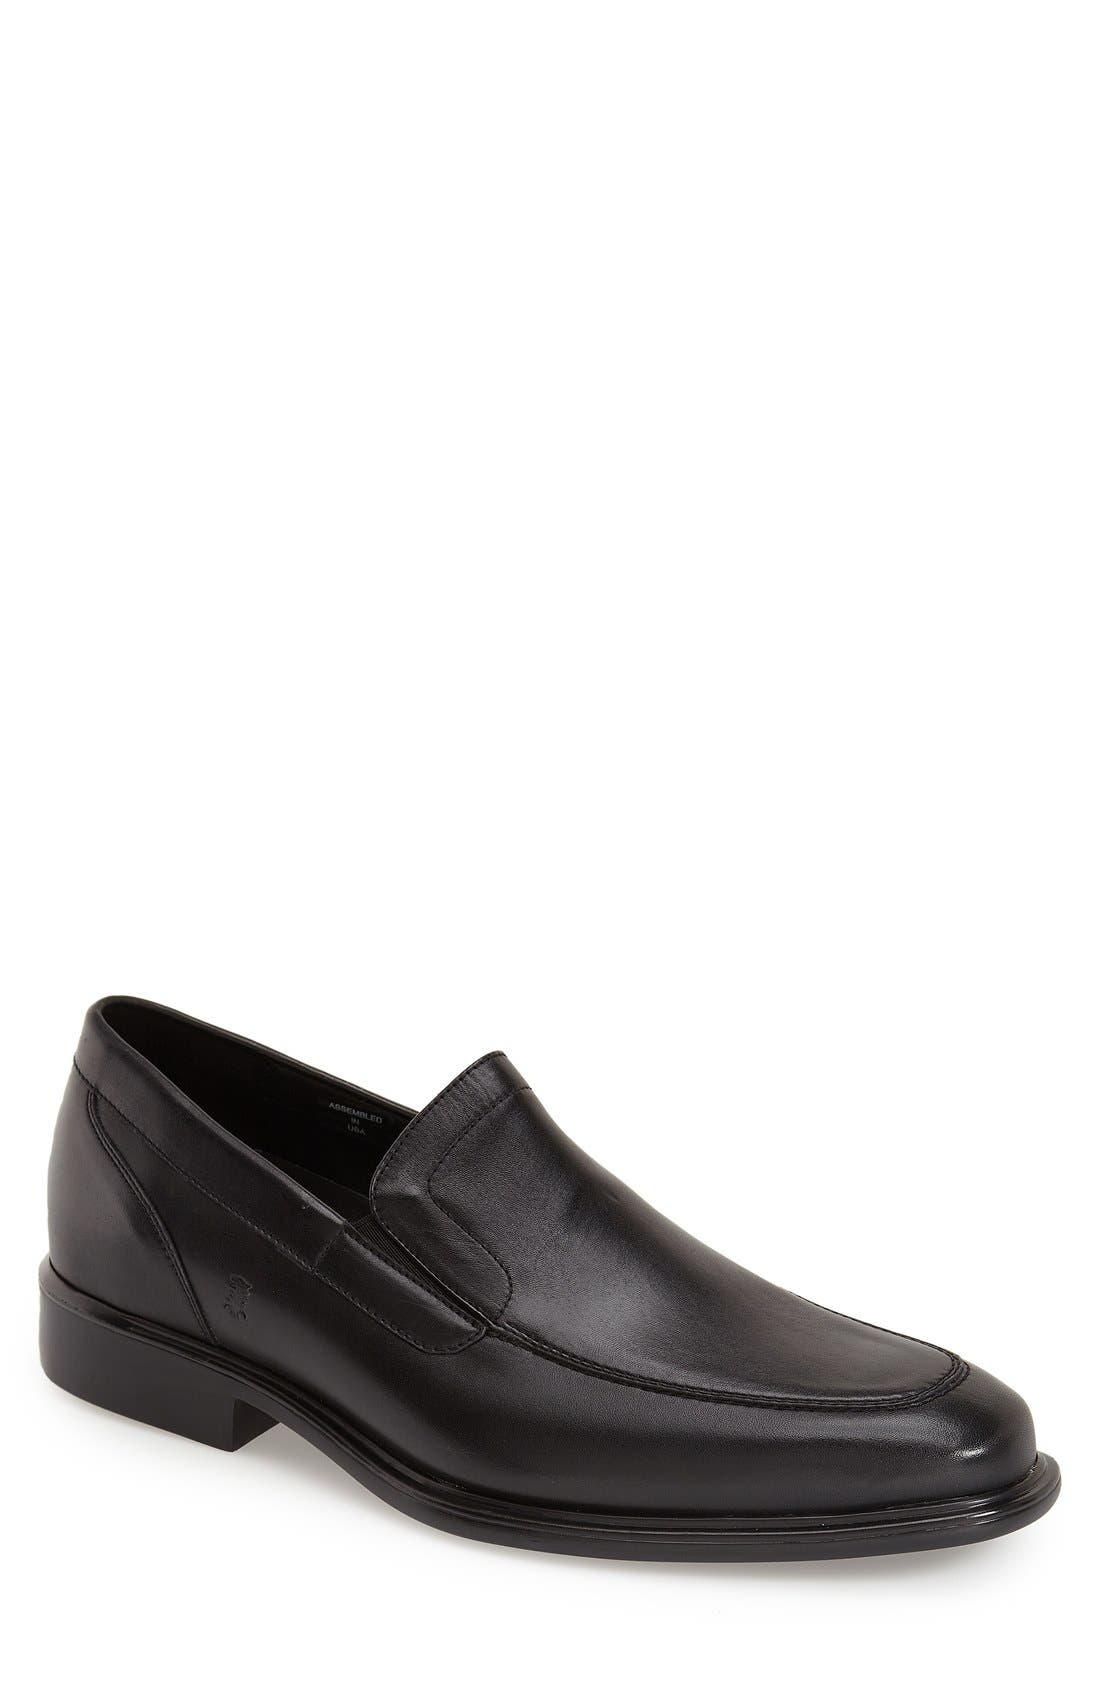 'Chancellor' Venetian Loafer,                             Main thumbnail 1, color,                             BLACK